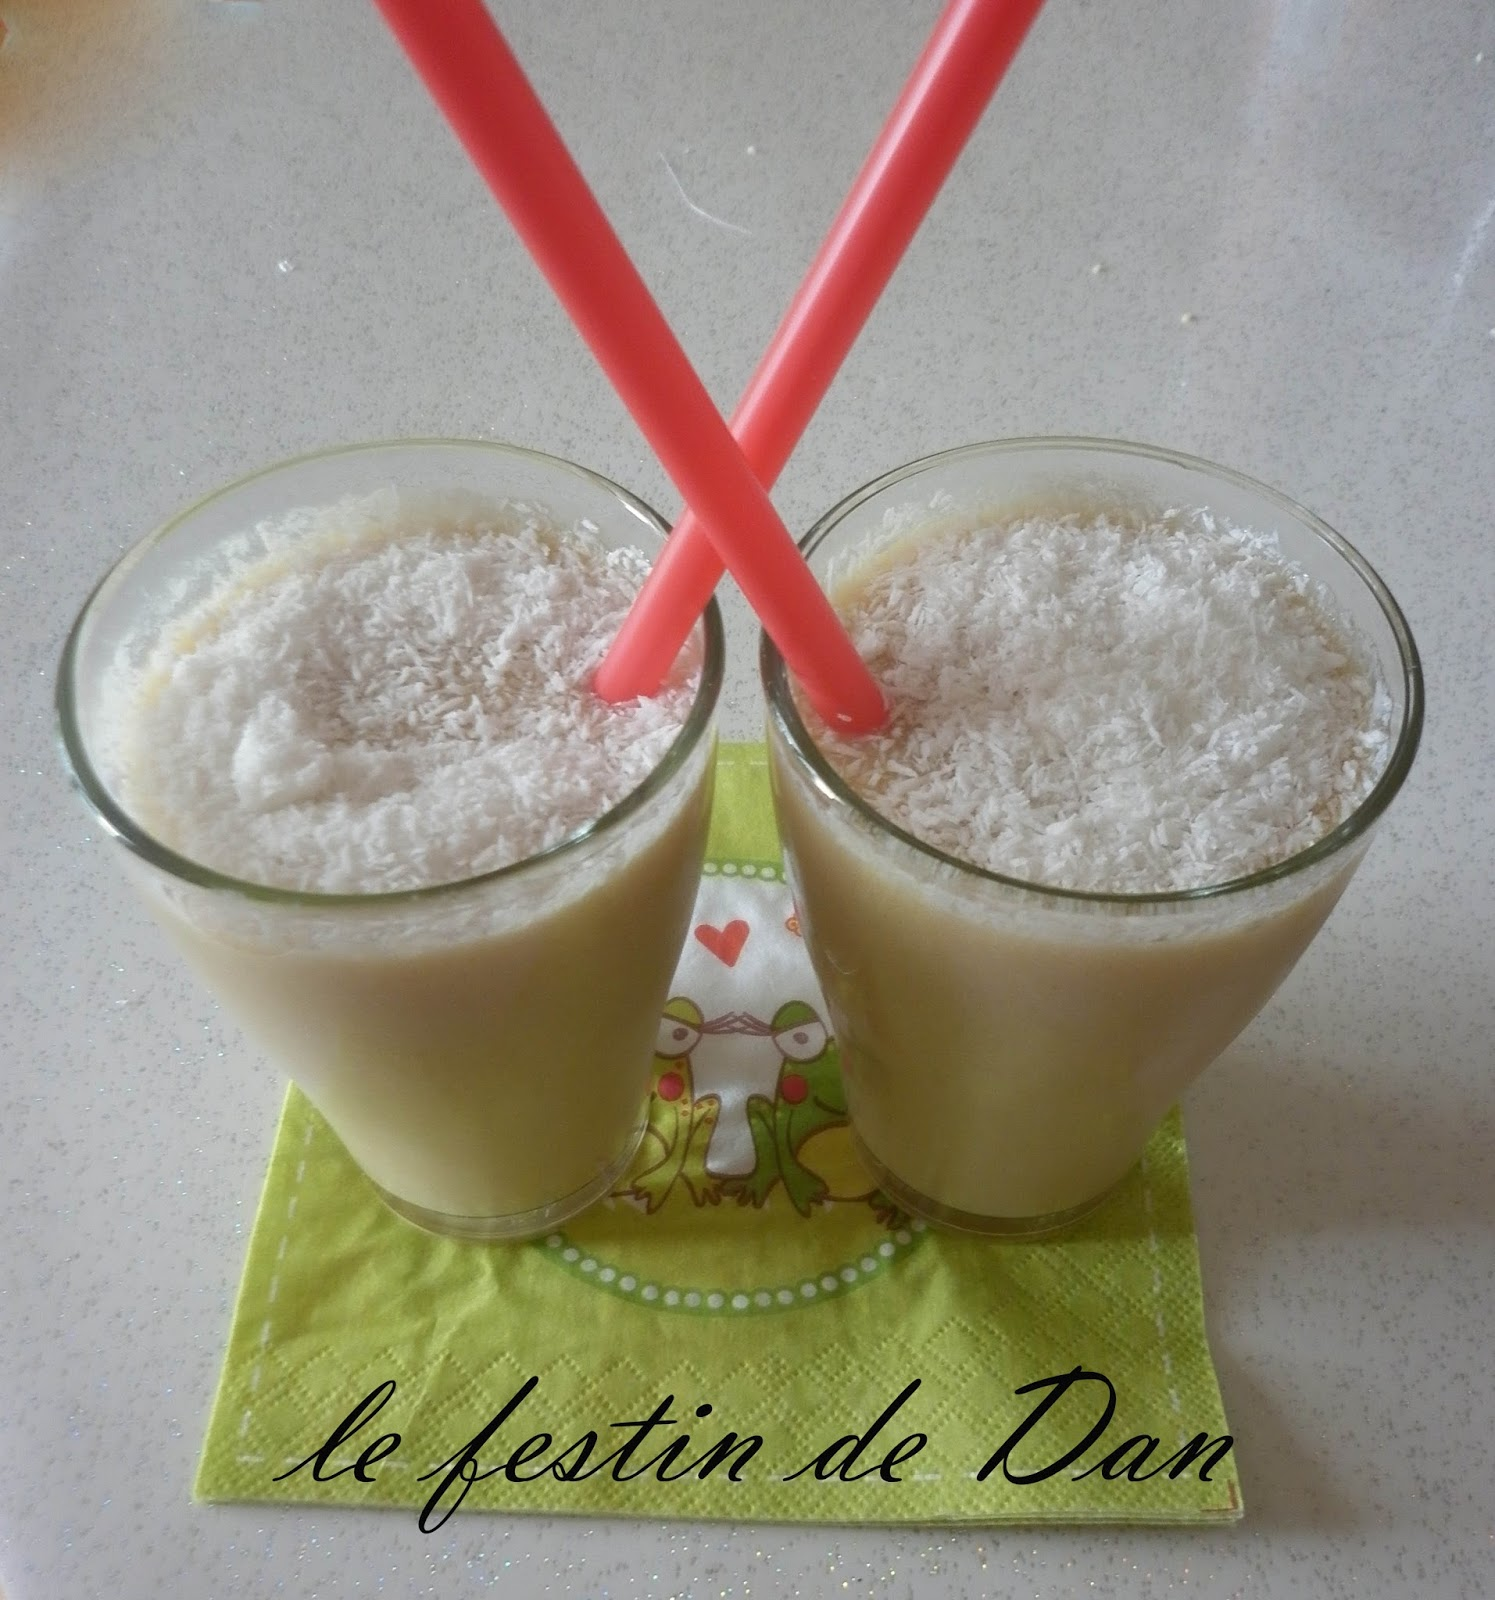 Le festin de dan cocktail sans alcool ananas fraise for Cocktail lait de coco